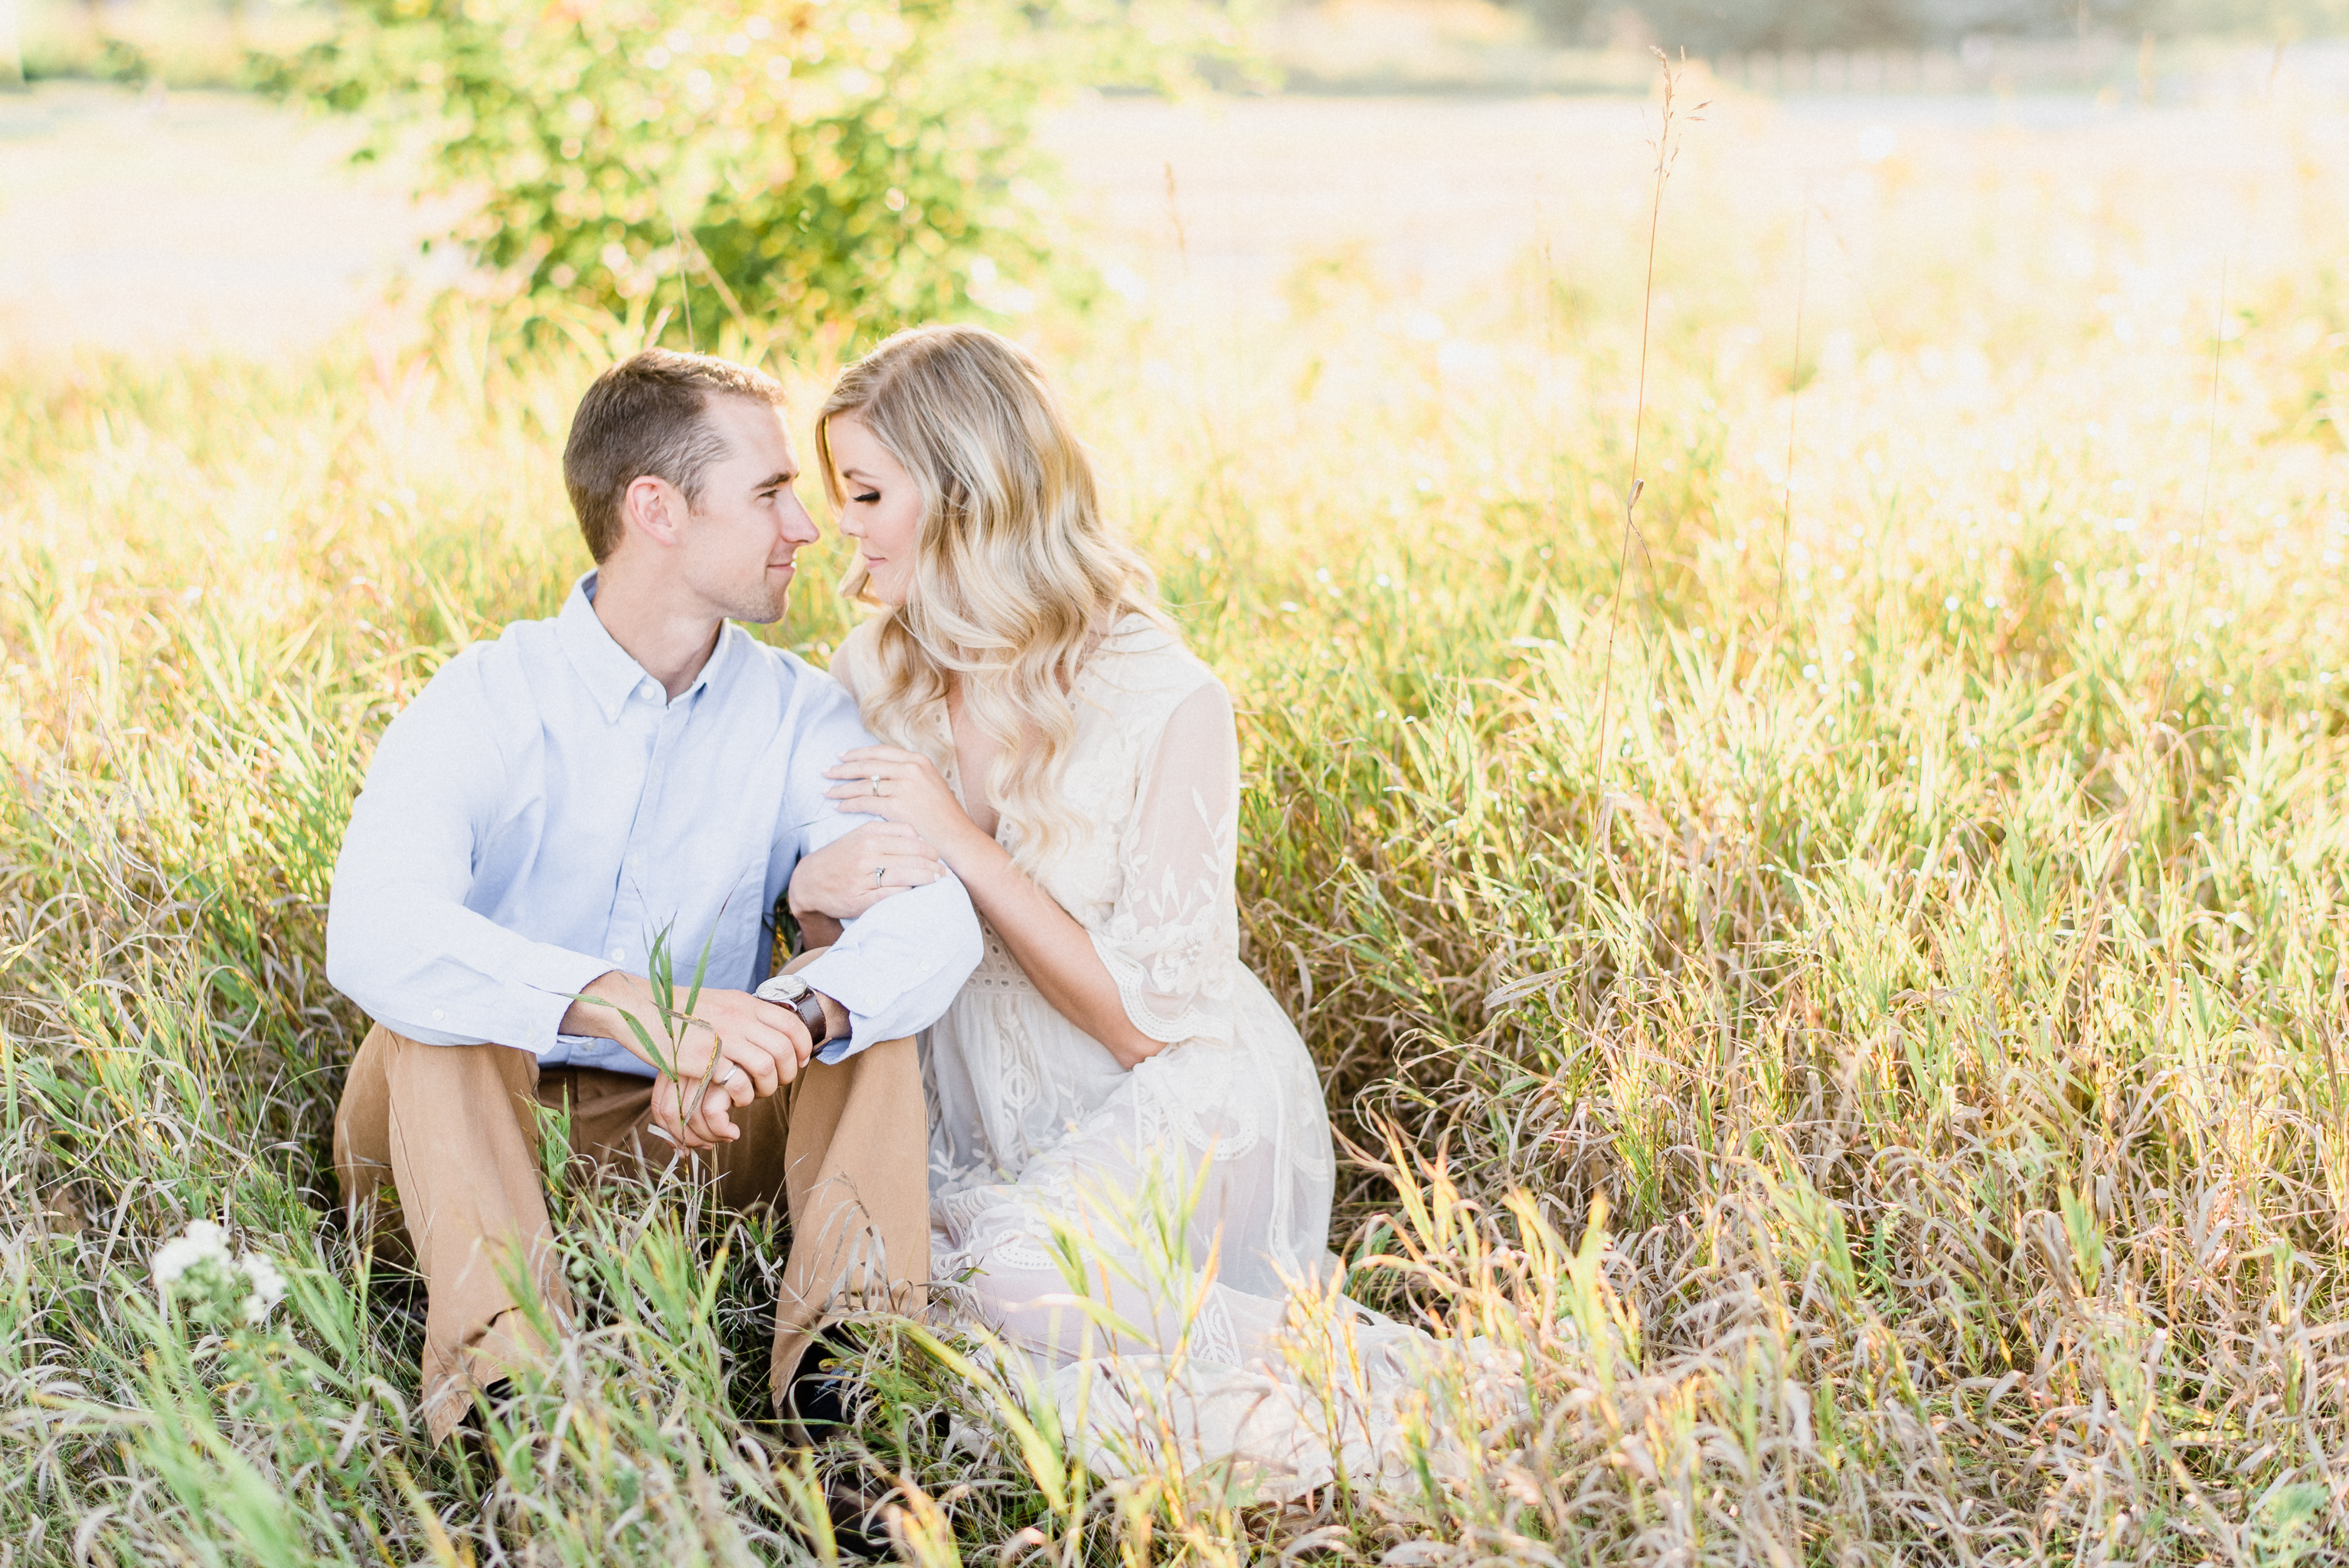 White lace engagement dress | Jenn Kavanagh Photography